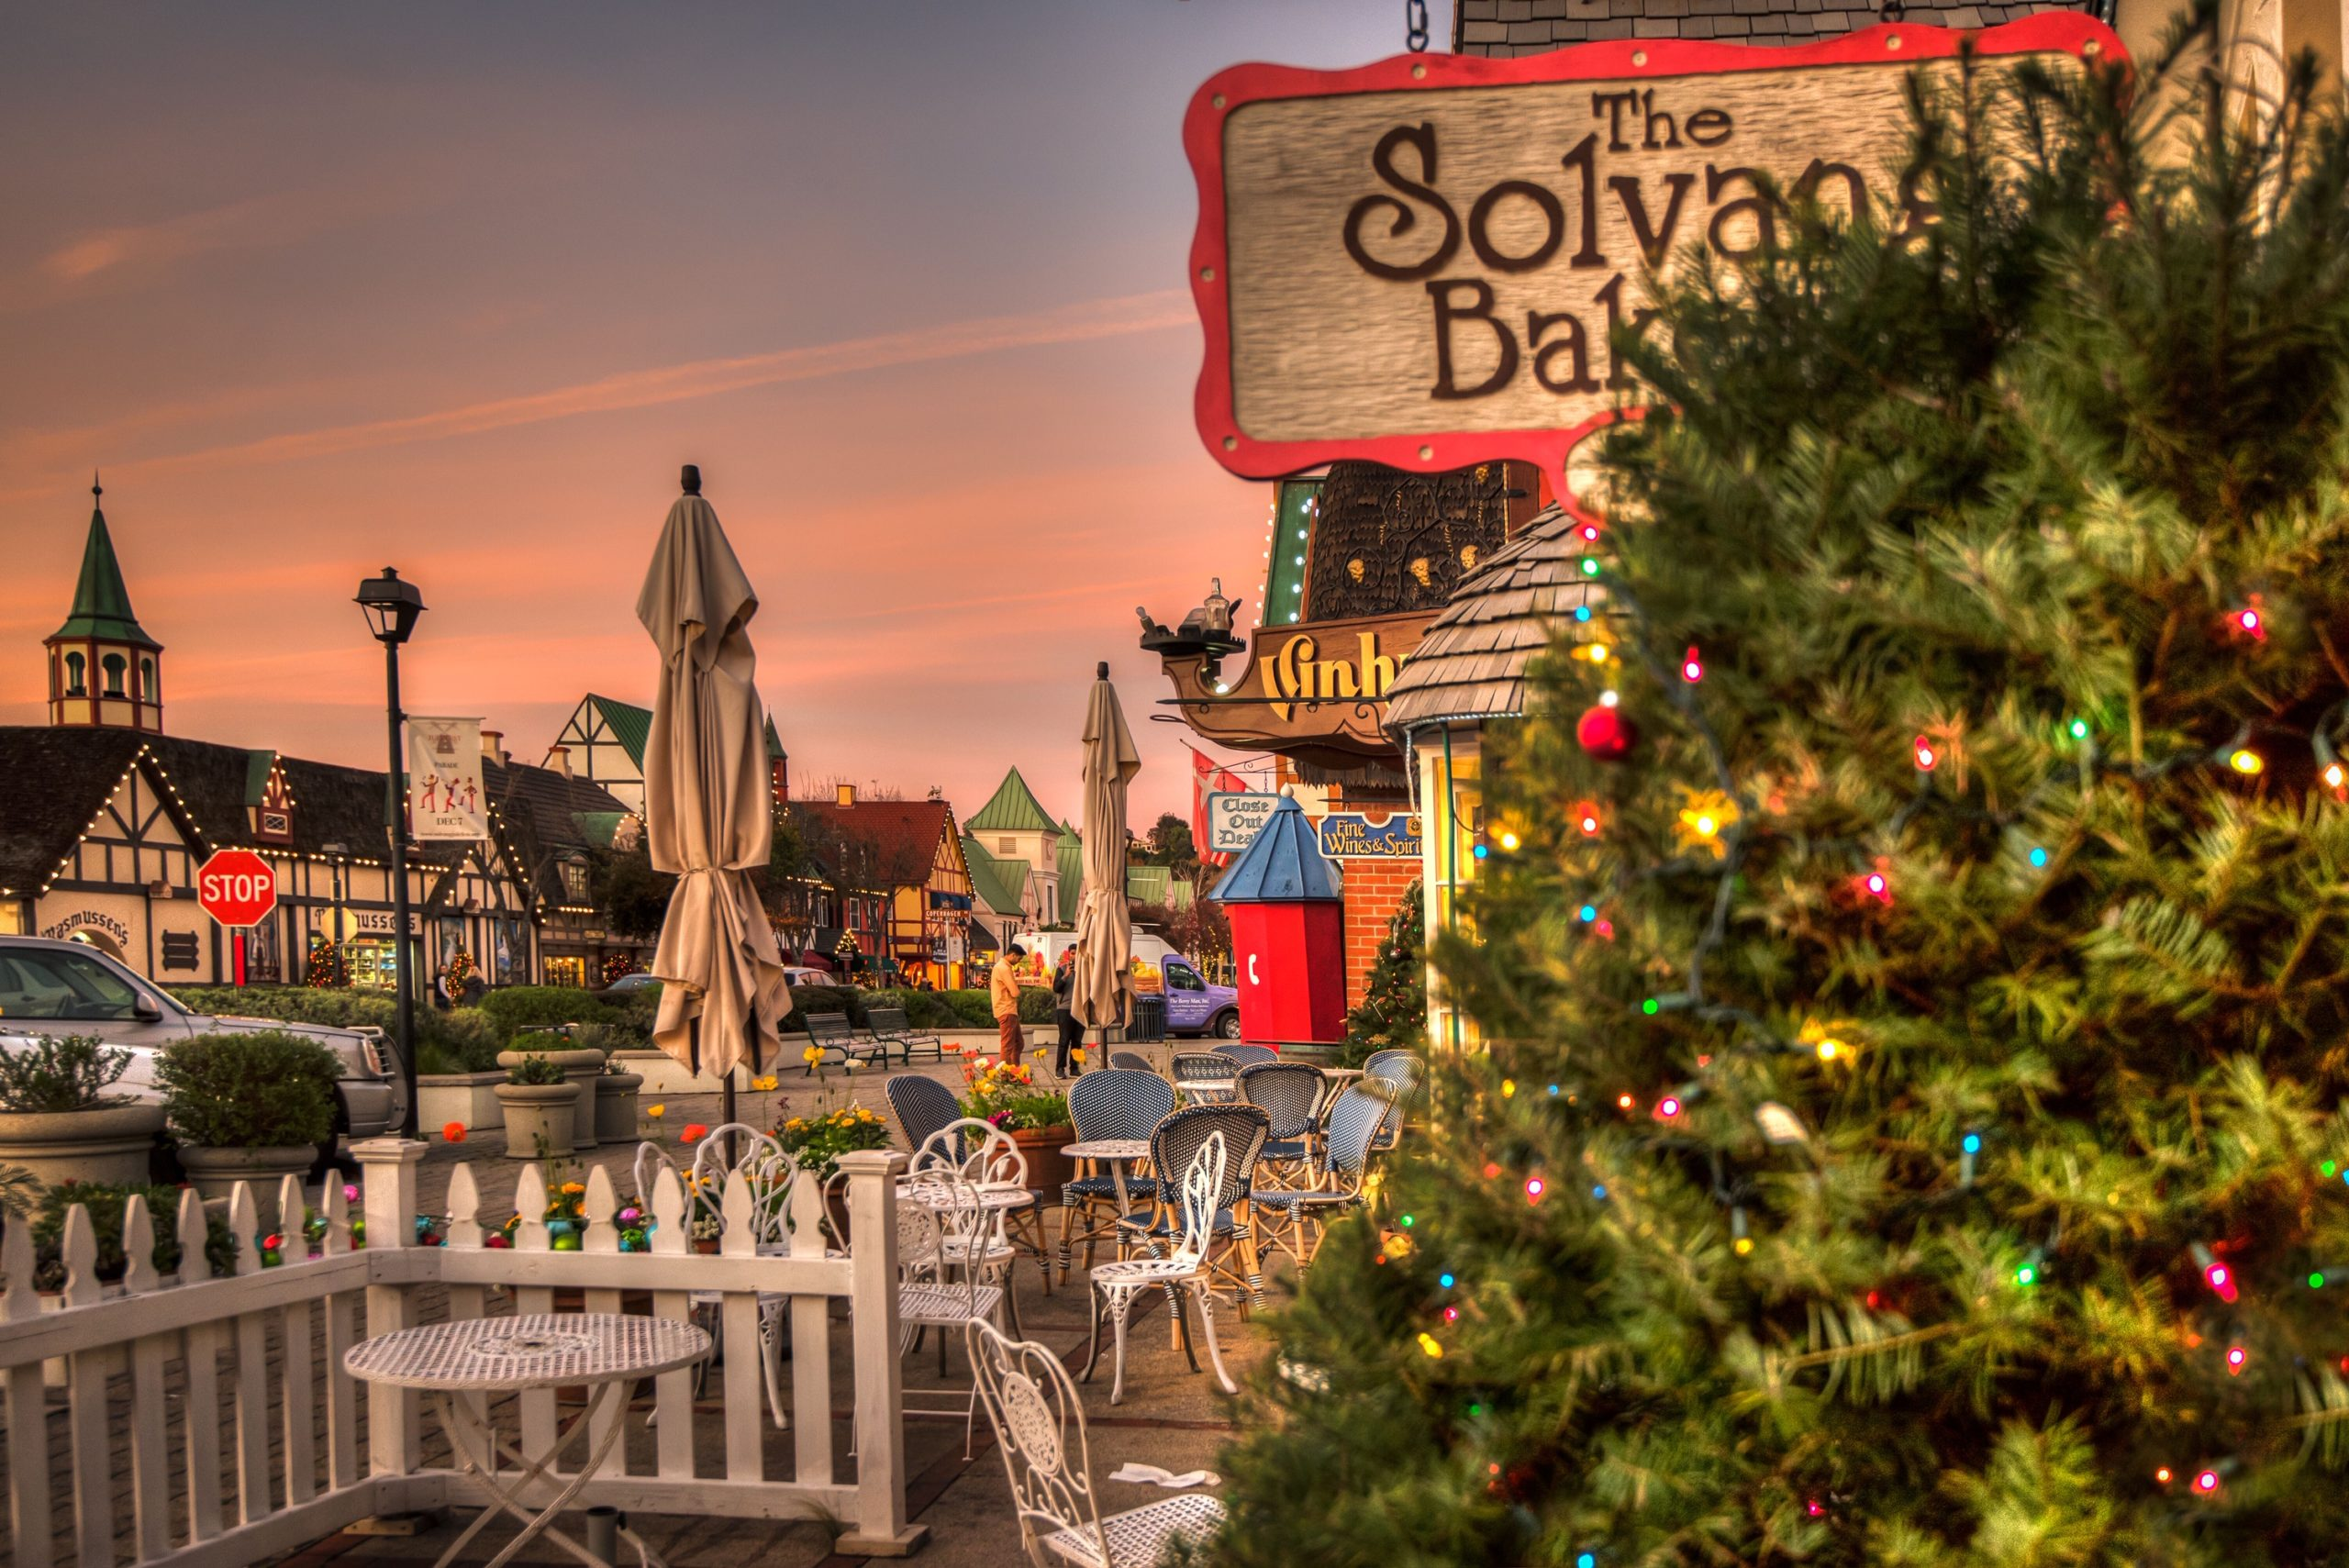 Solvang Christmas 2020 Christmas in Solvang: Danish Traditions, Olsen's Bakery & Drones